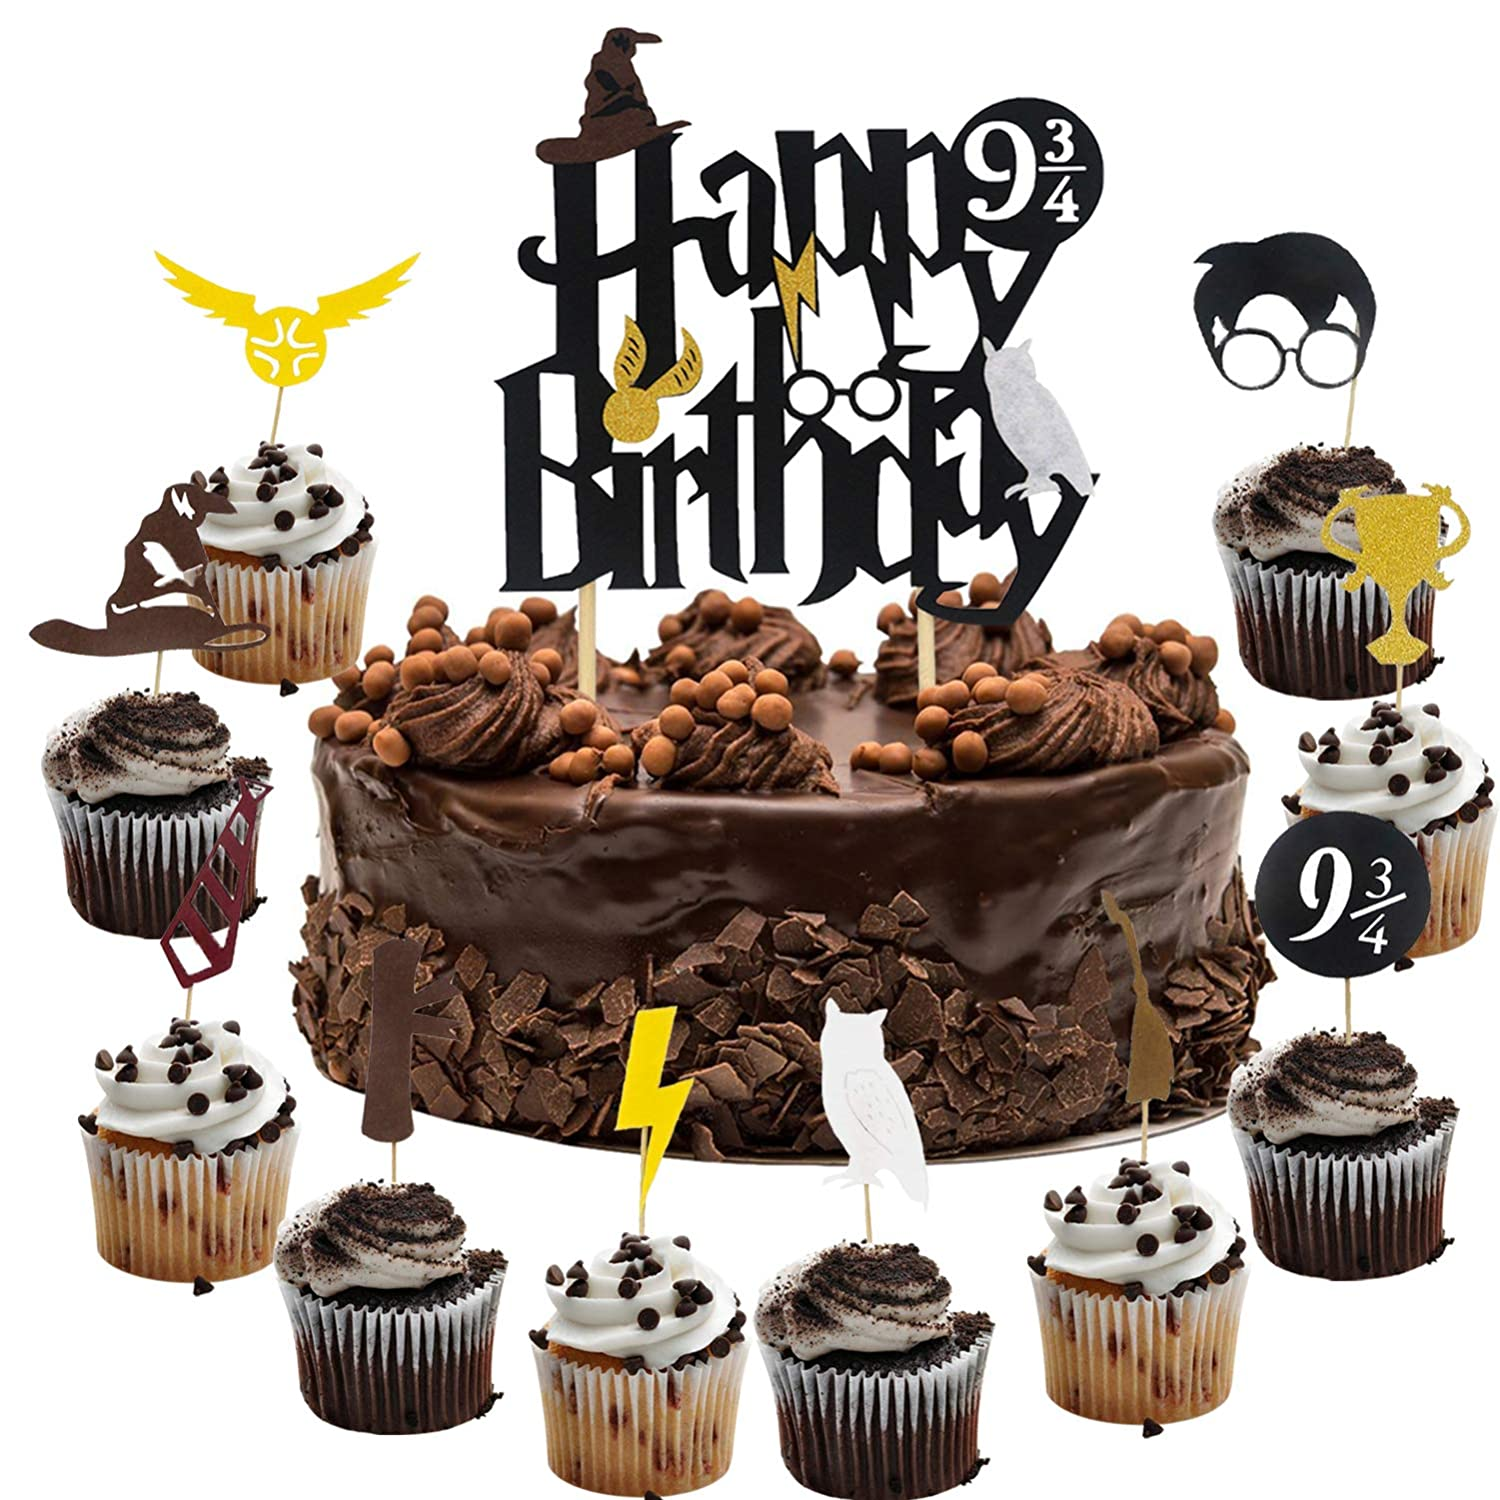 Harry Potter Inspired Happy Birthday Cake Topper and Cupcake Toppers Cake  Decorations Set: Amazon.com: Grocery & Gourmet Food